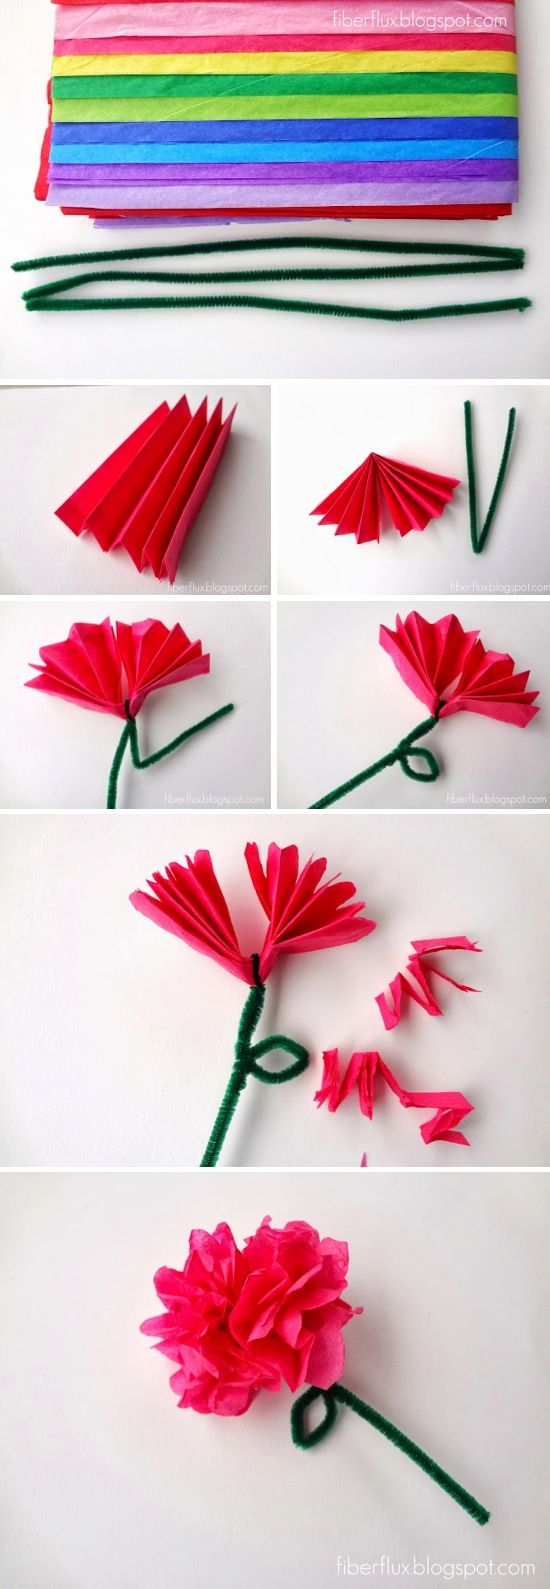 30 Best Images About Craft Ideas On Pinterest